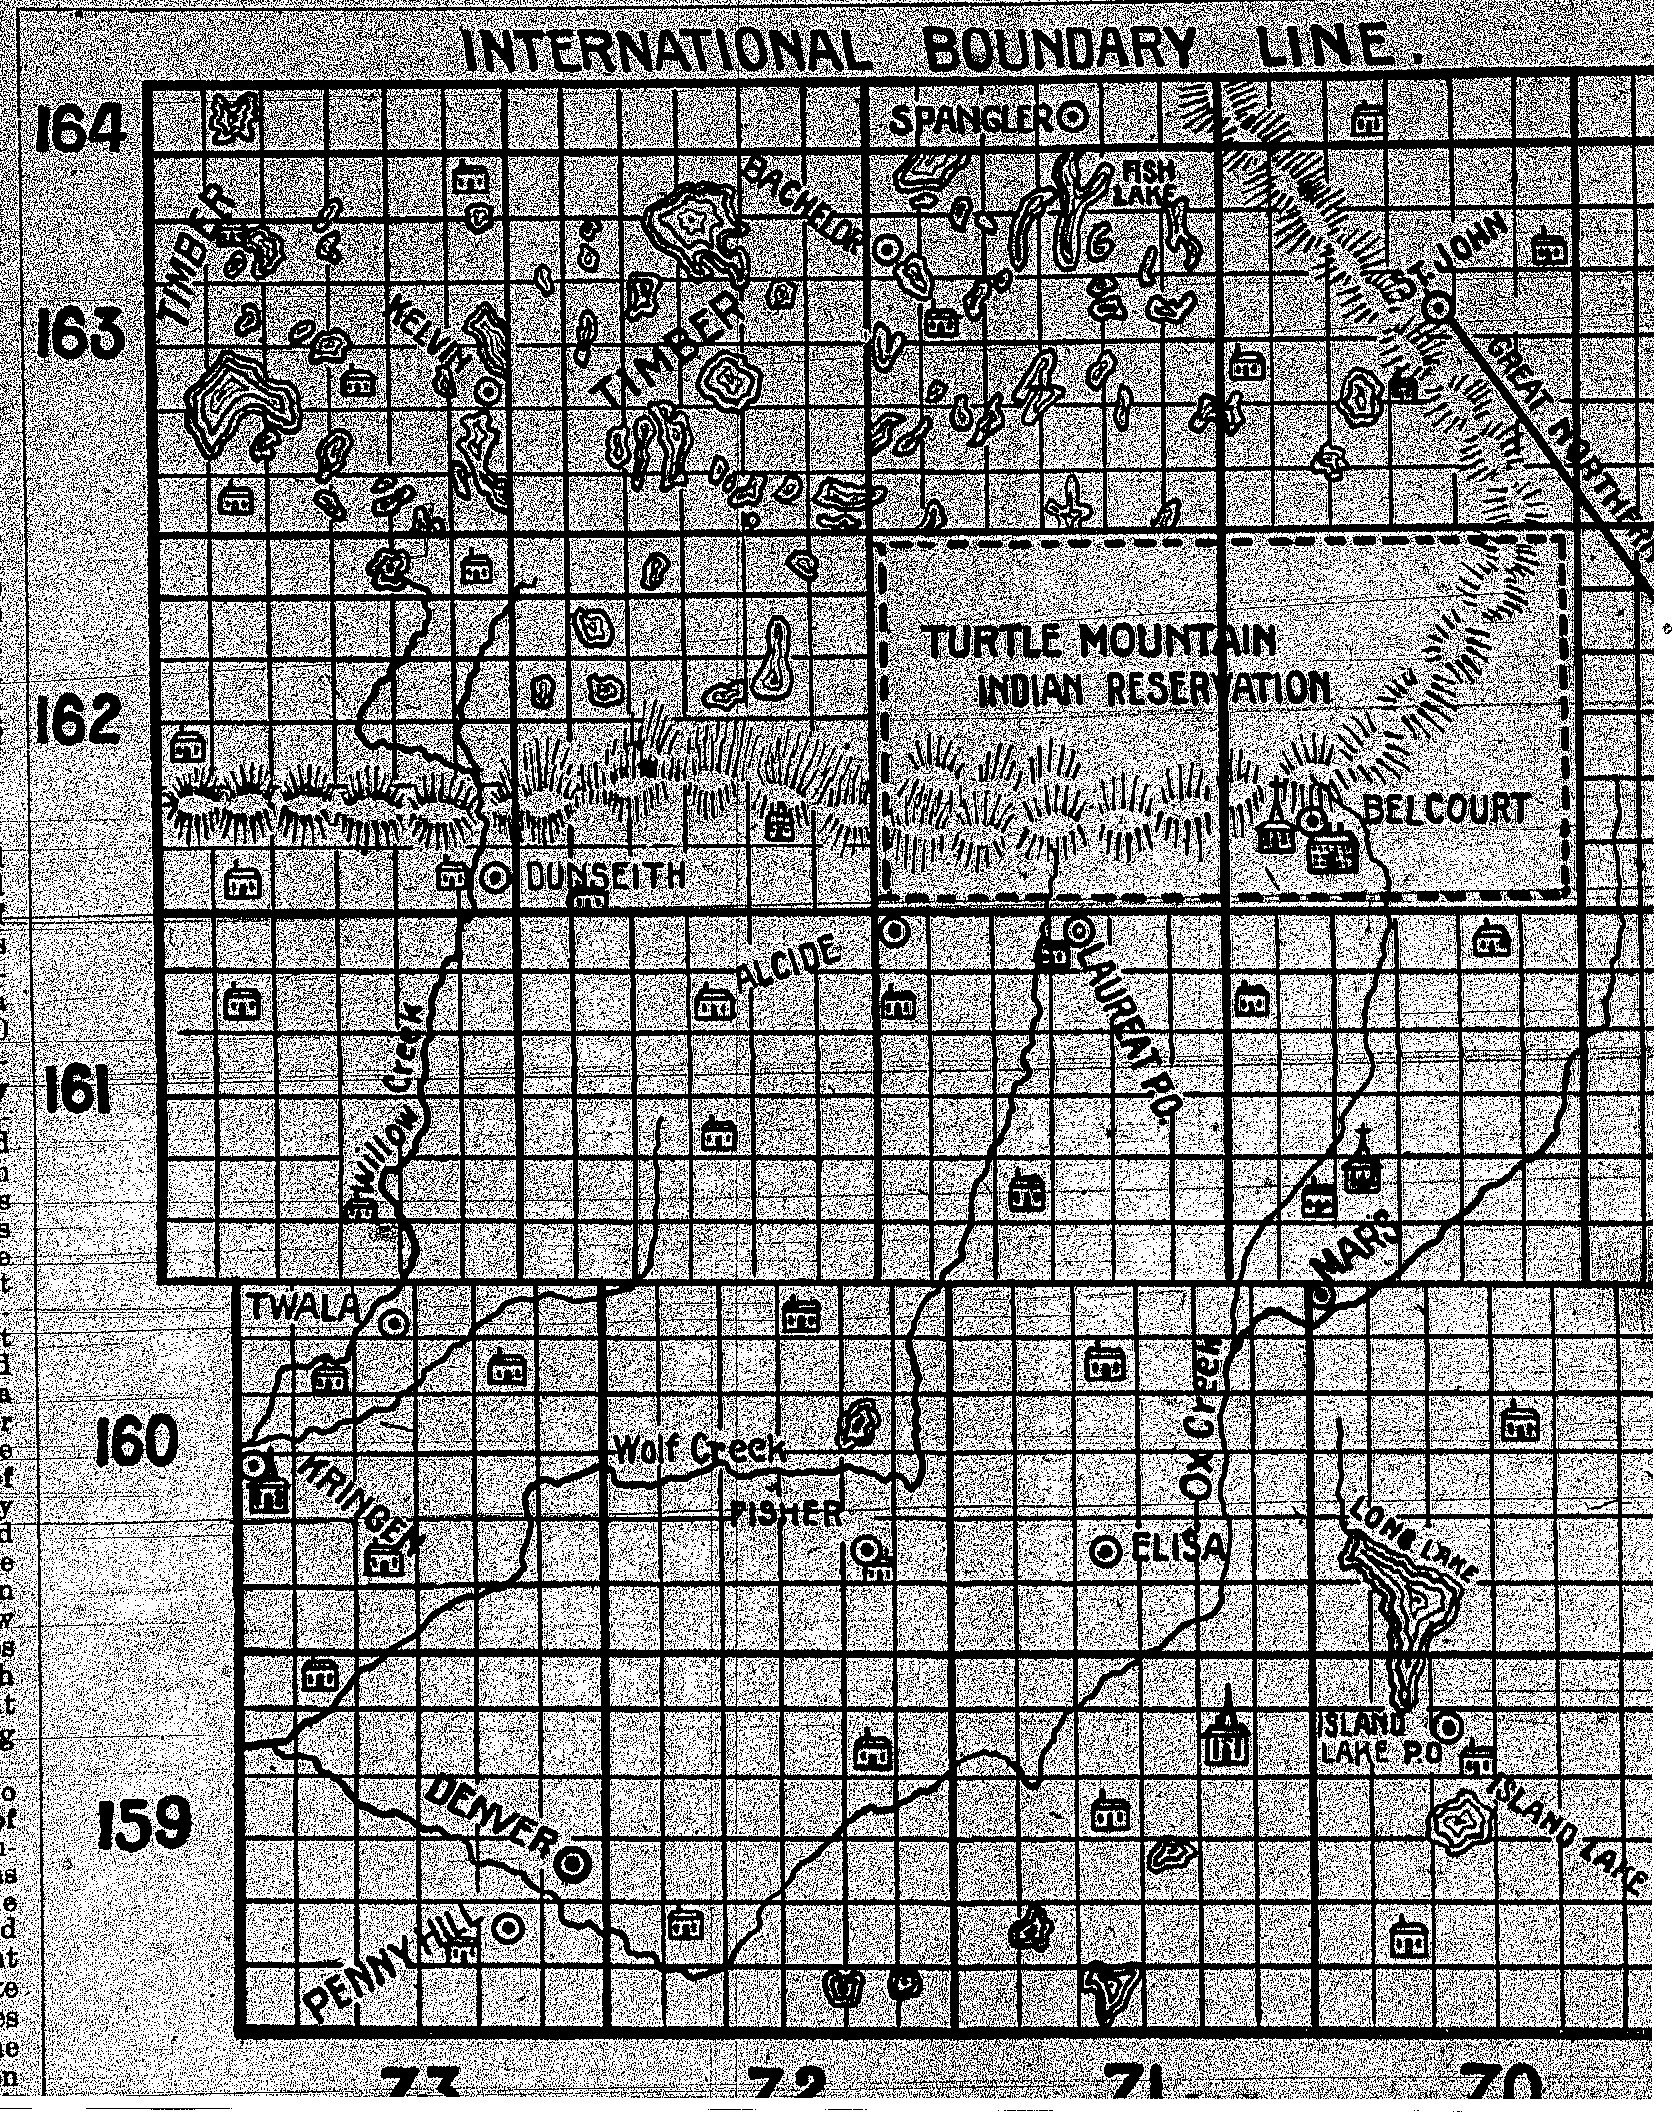 Township/ Range Classification Map for Northern North Dakota (Rolette County)